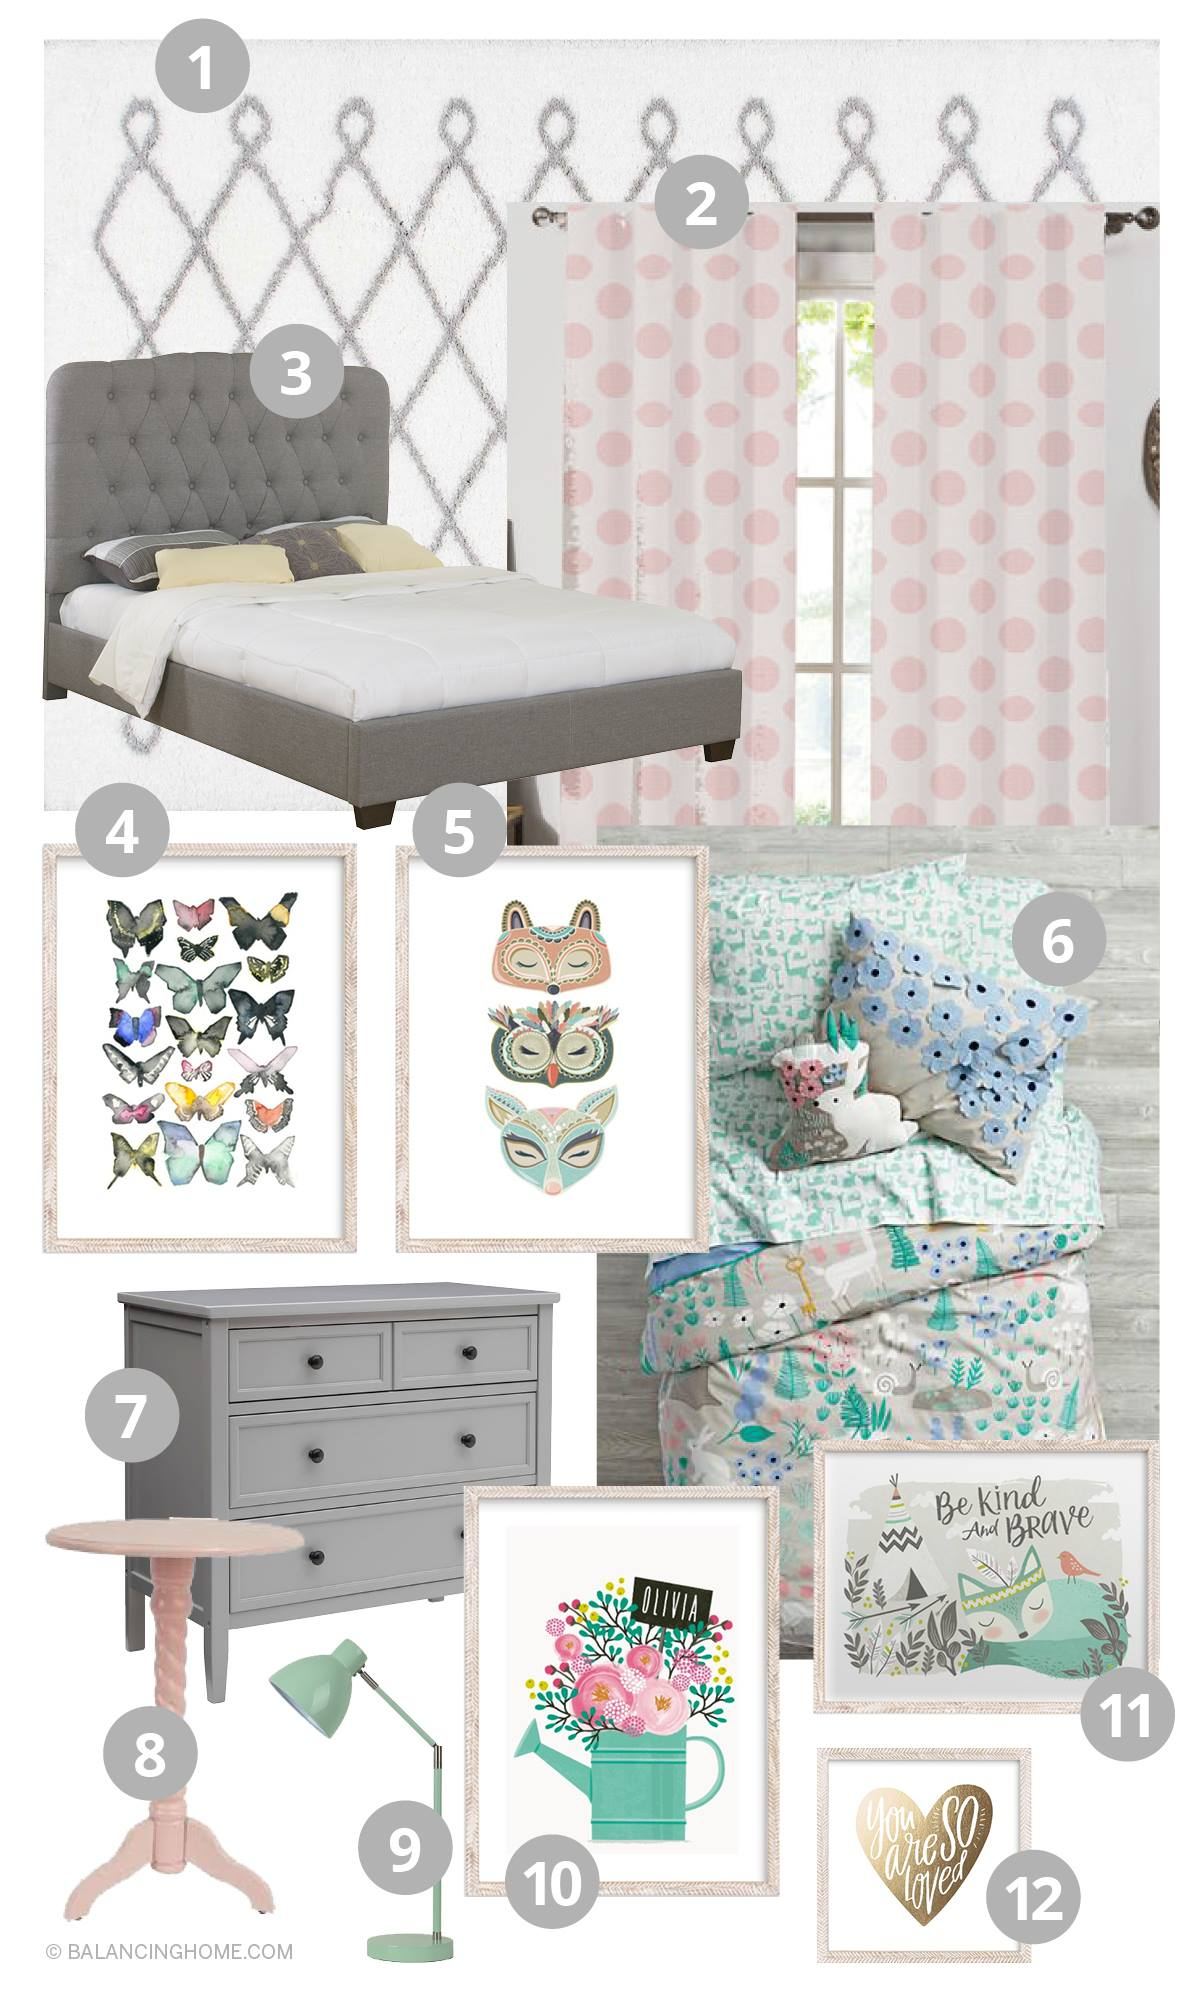 Girl Bedroom Decorating Ideas Moodboard woodland forest folktale, gray, pink, mint, turquoise, periwinkle